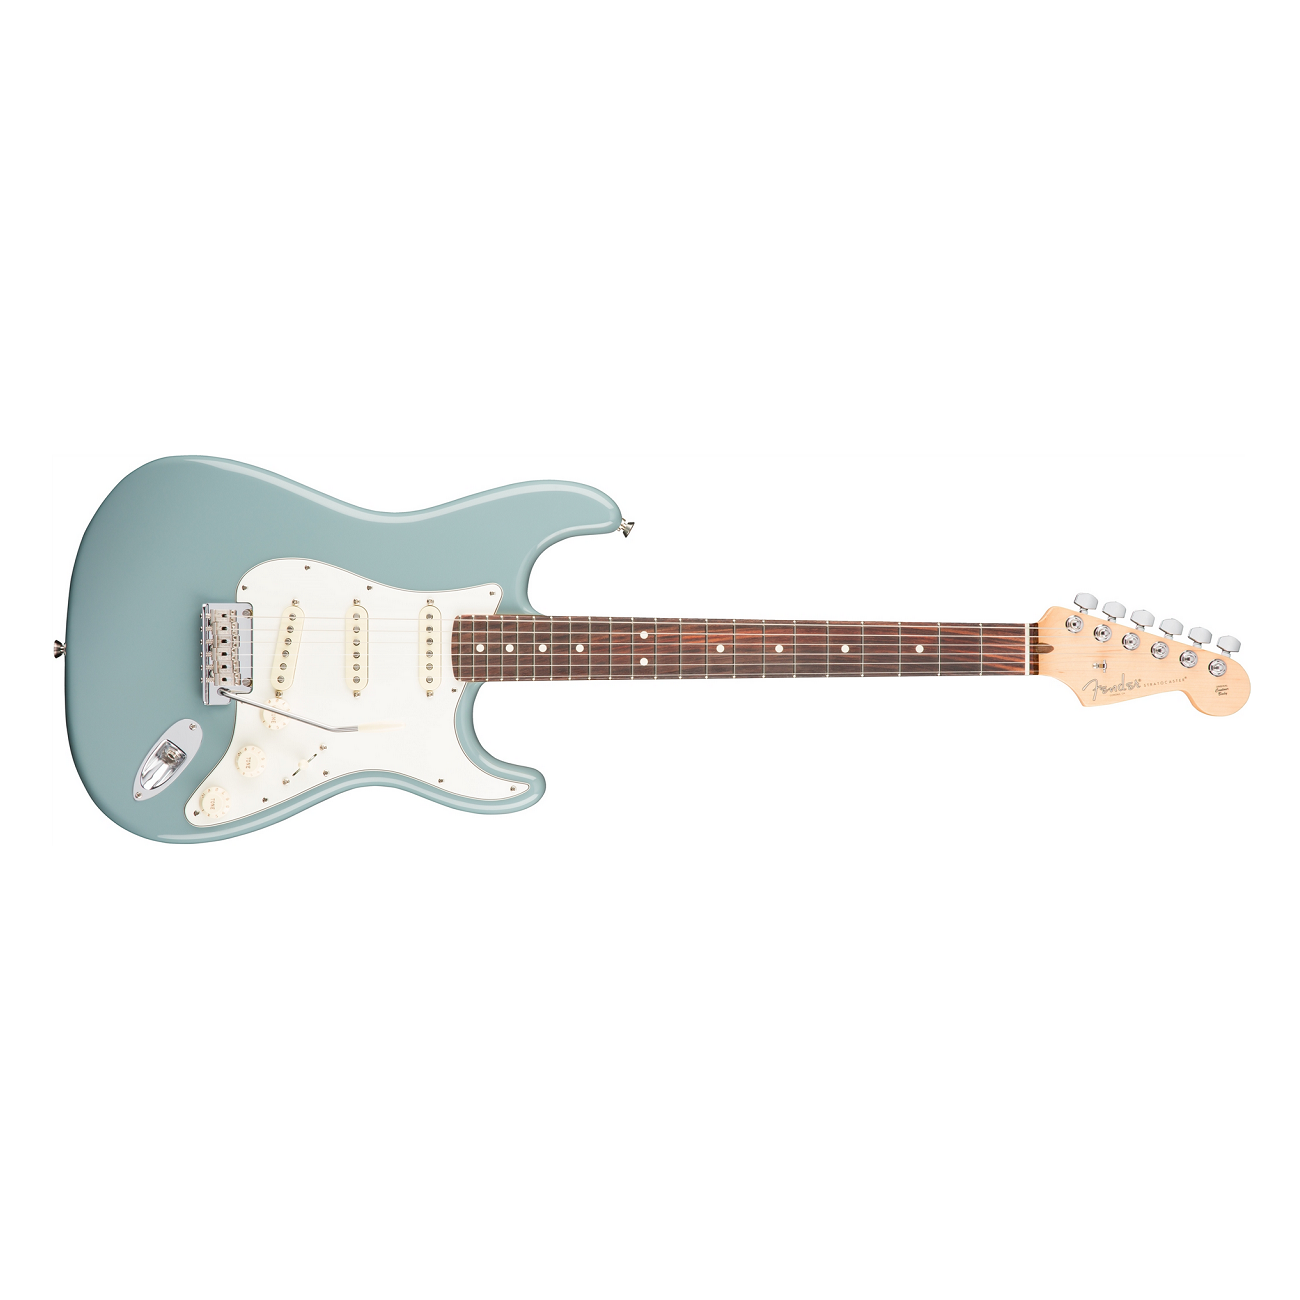 Fender American Professional Stratocaster In Sonic Gray With Rosewood Fingerboard Fender American Folk Instruments Guitar